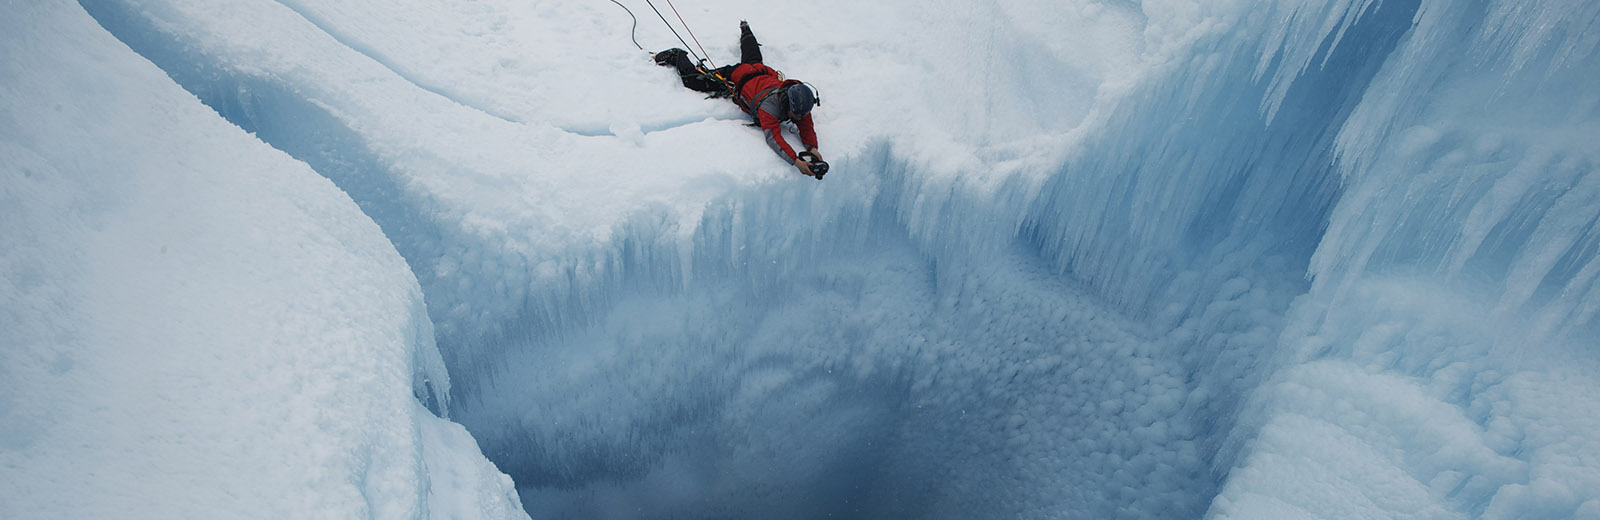 slider2-man-looking-into-glacier.jpg